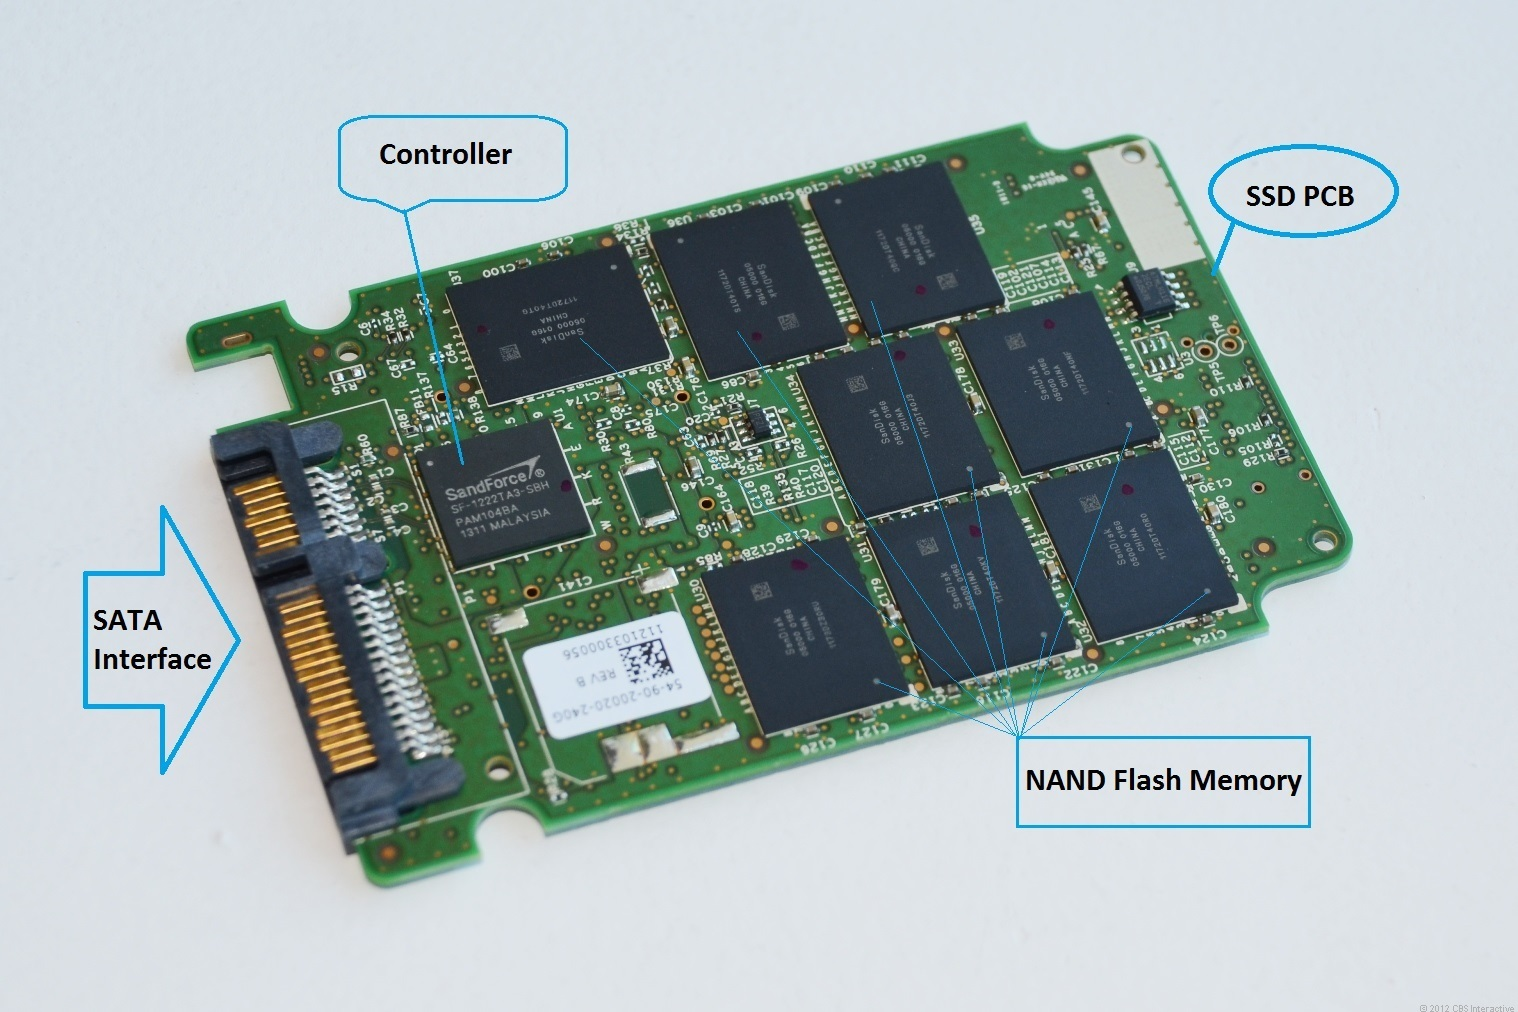 Ssd Recovery Angel Data Labeled Motherboard Diagram